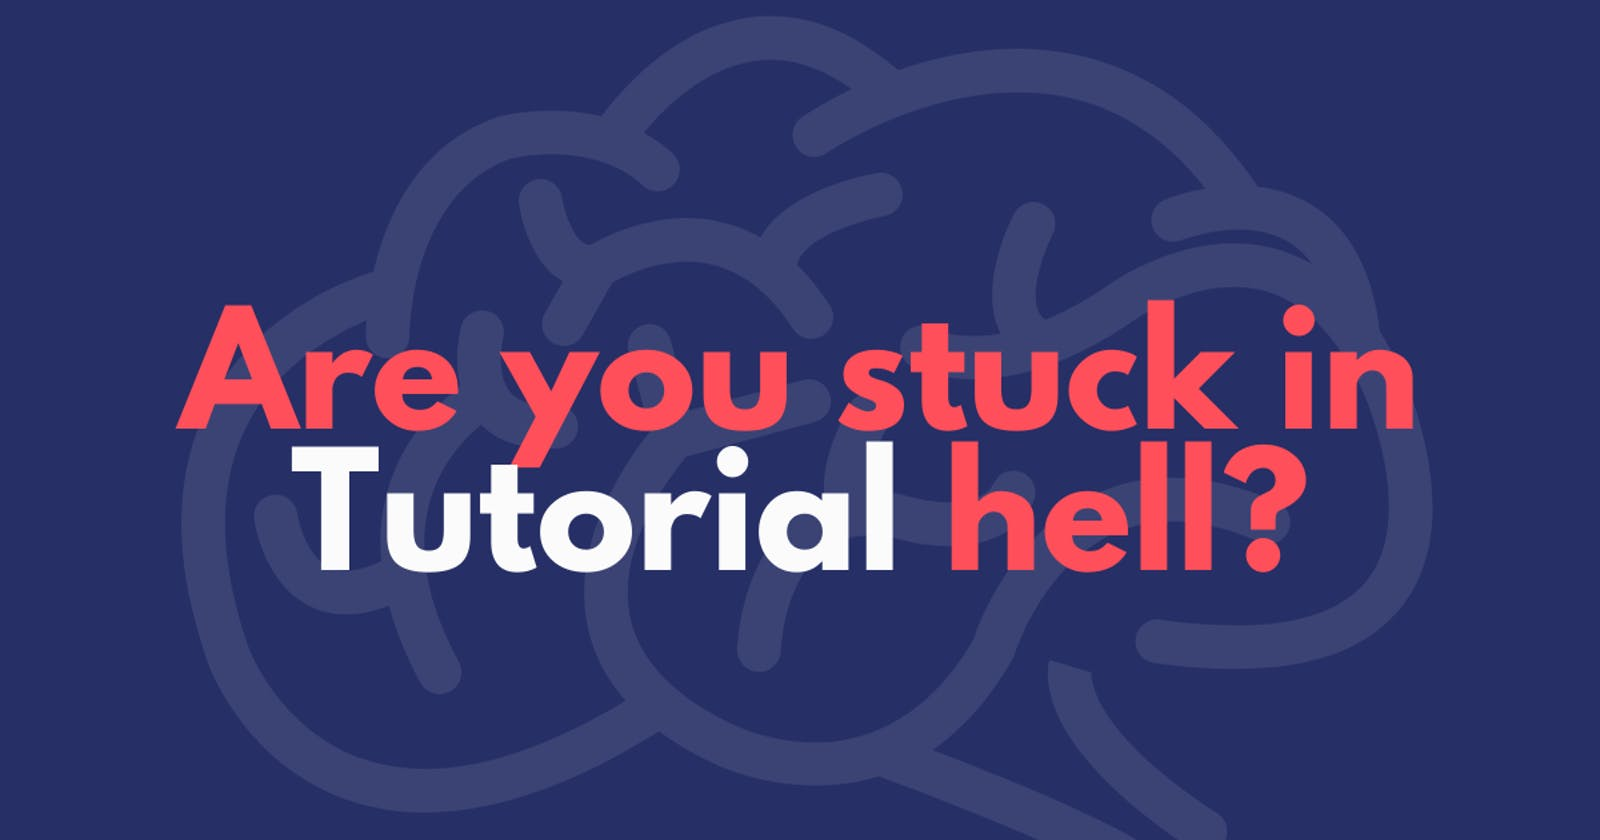 Are you stuck in Tutorial hell?